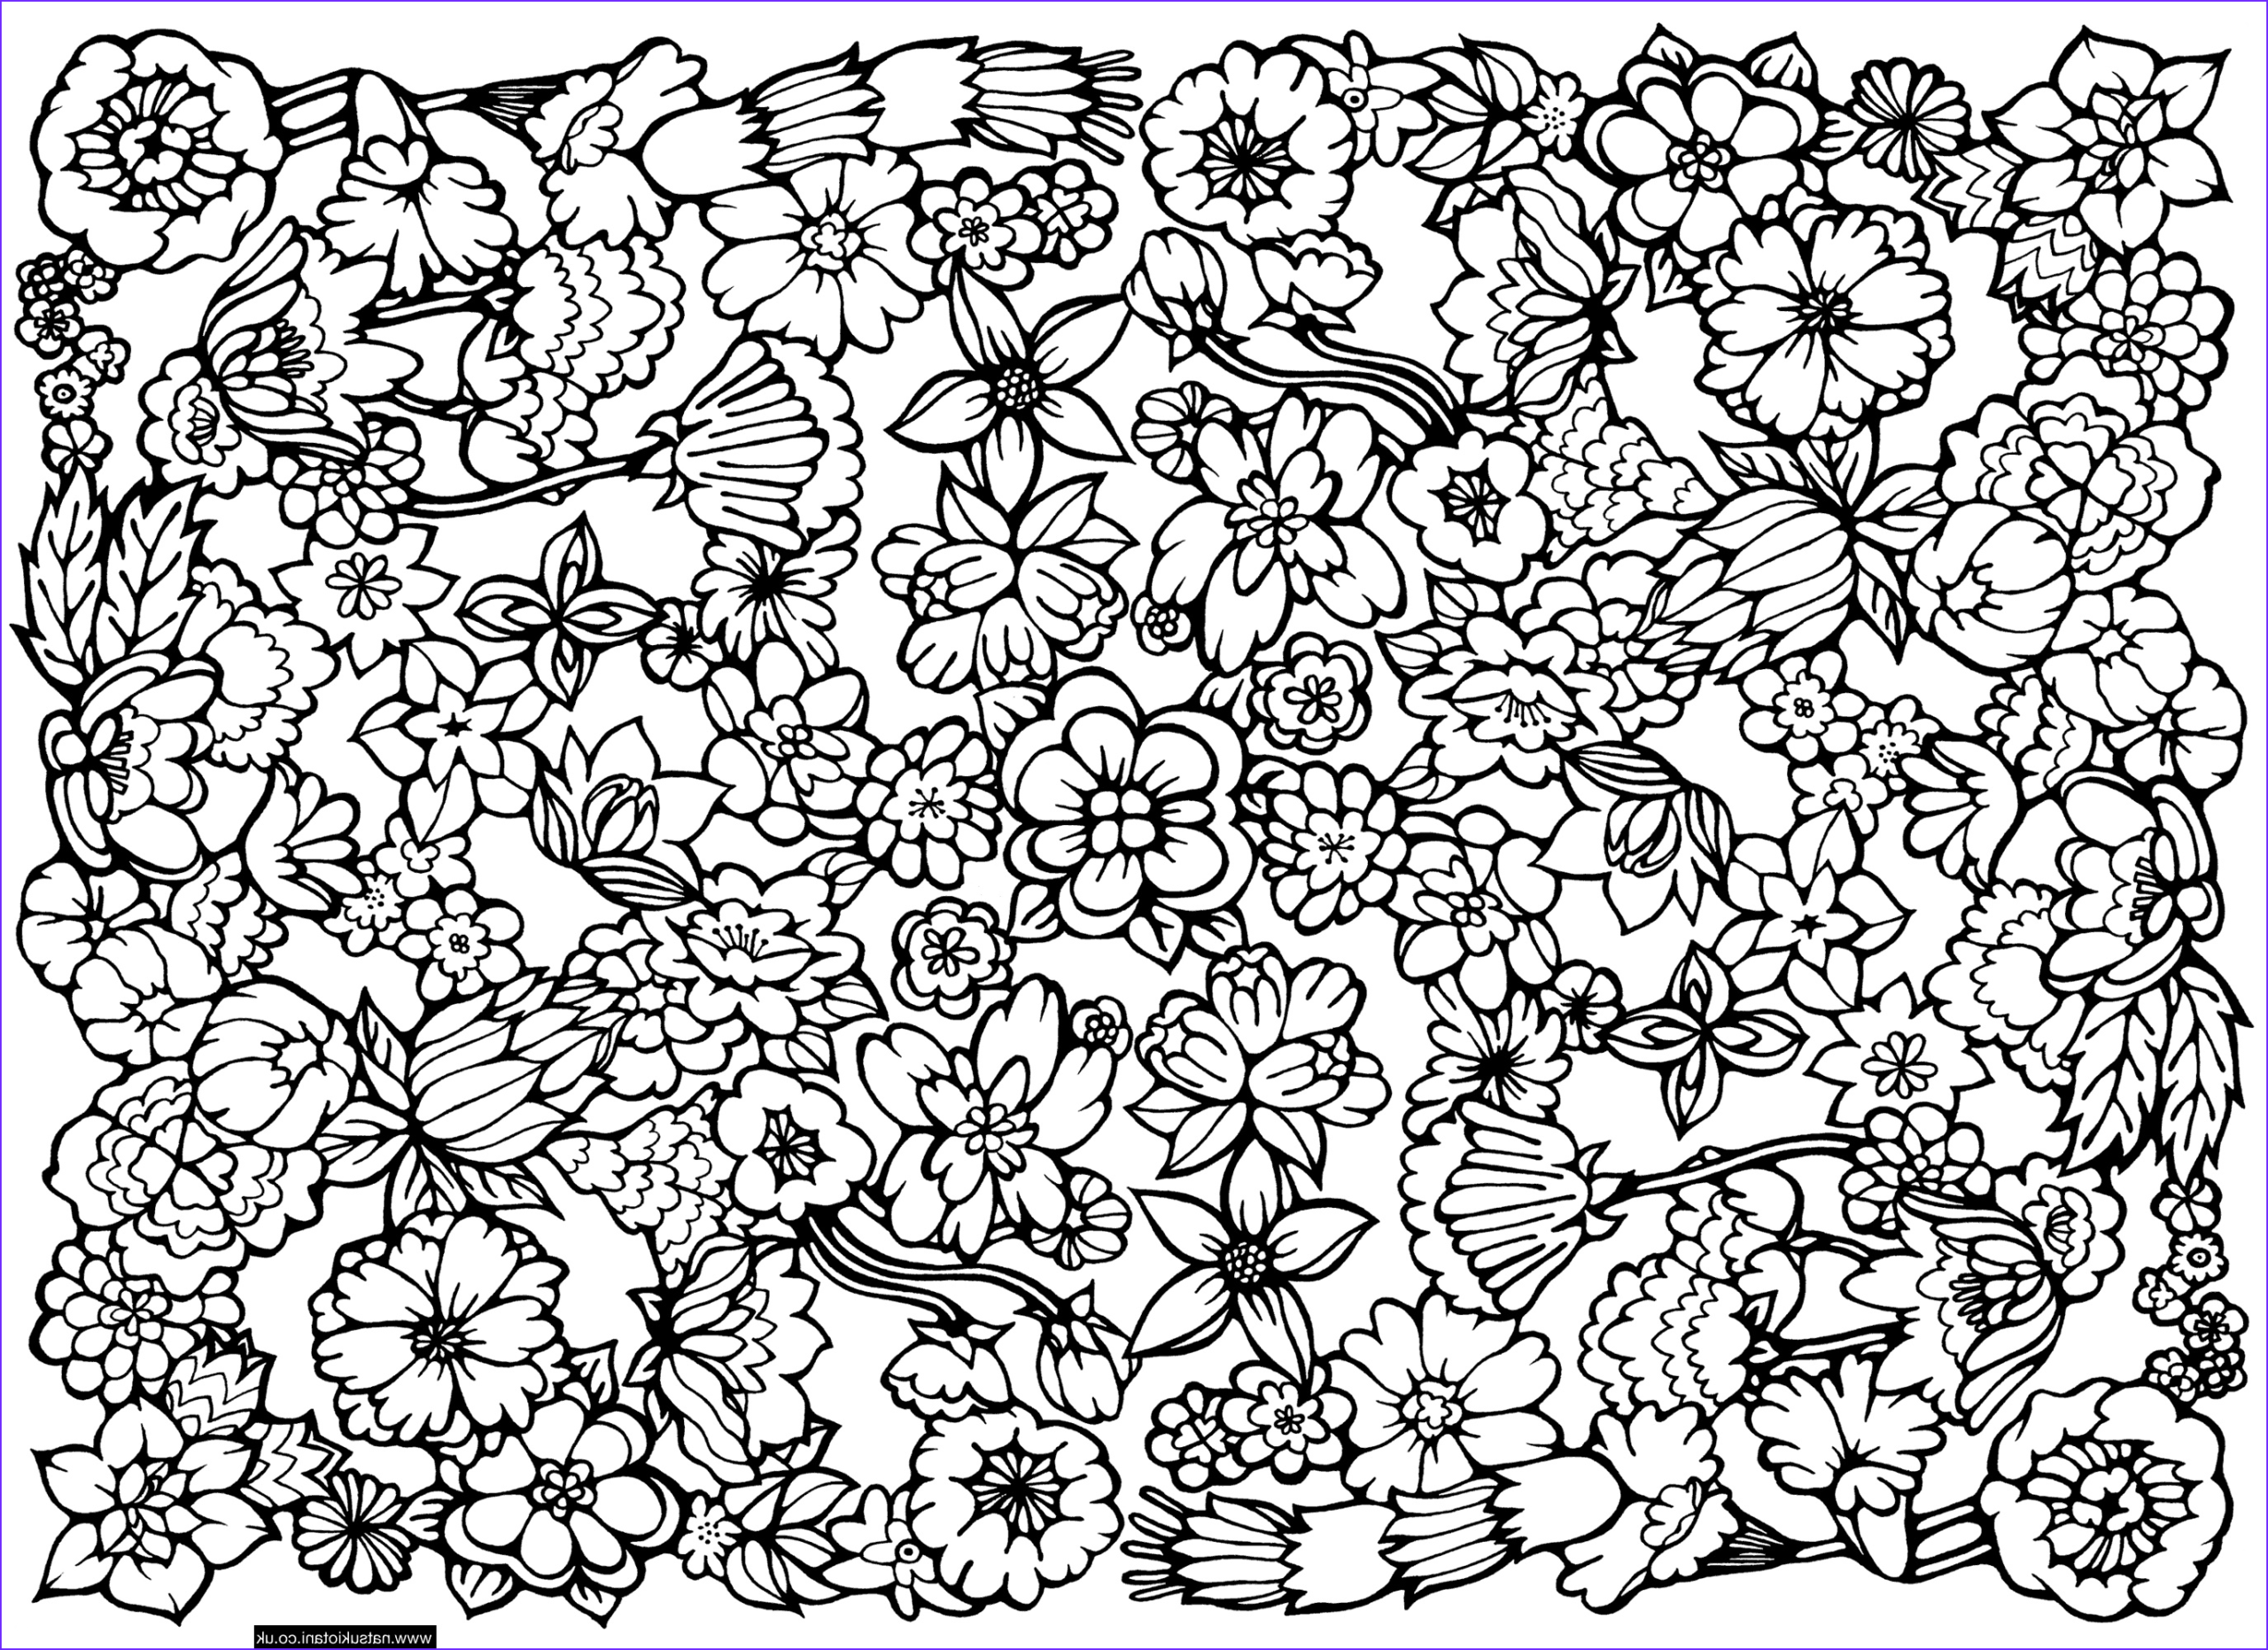 Coloring Pages Designs Best Of Image Coloring Pages Hard Designs Coloring Home